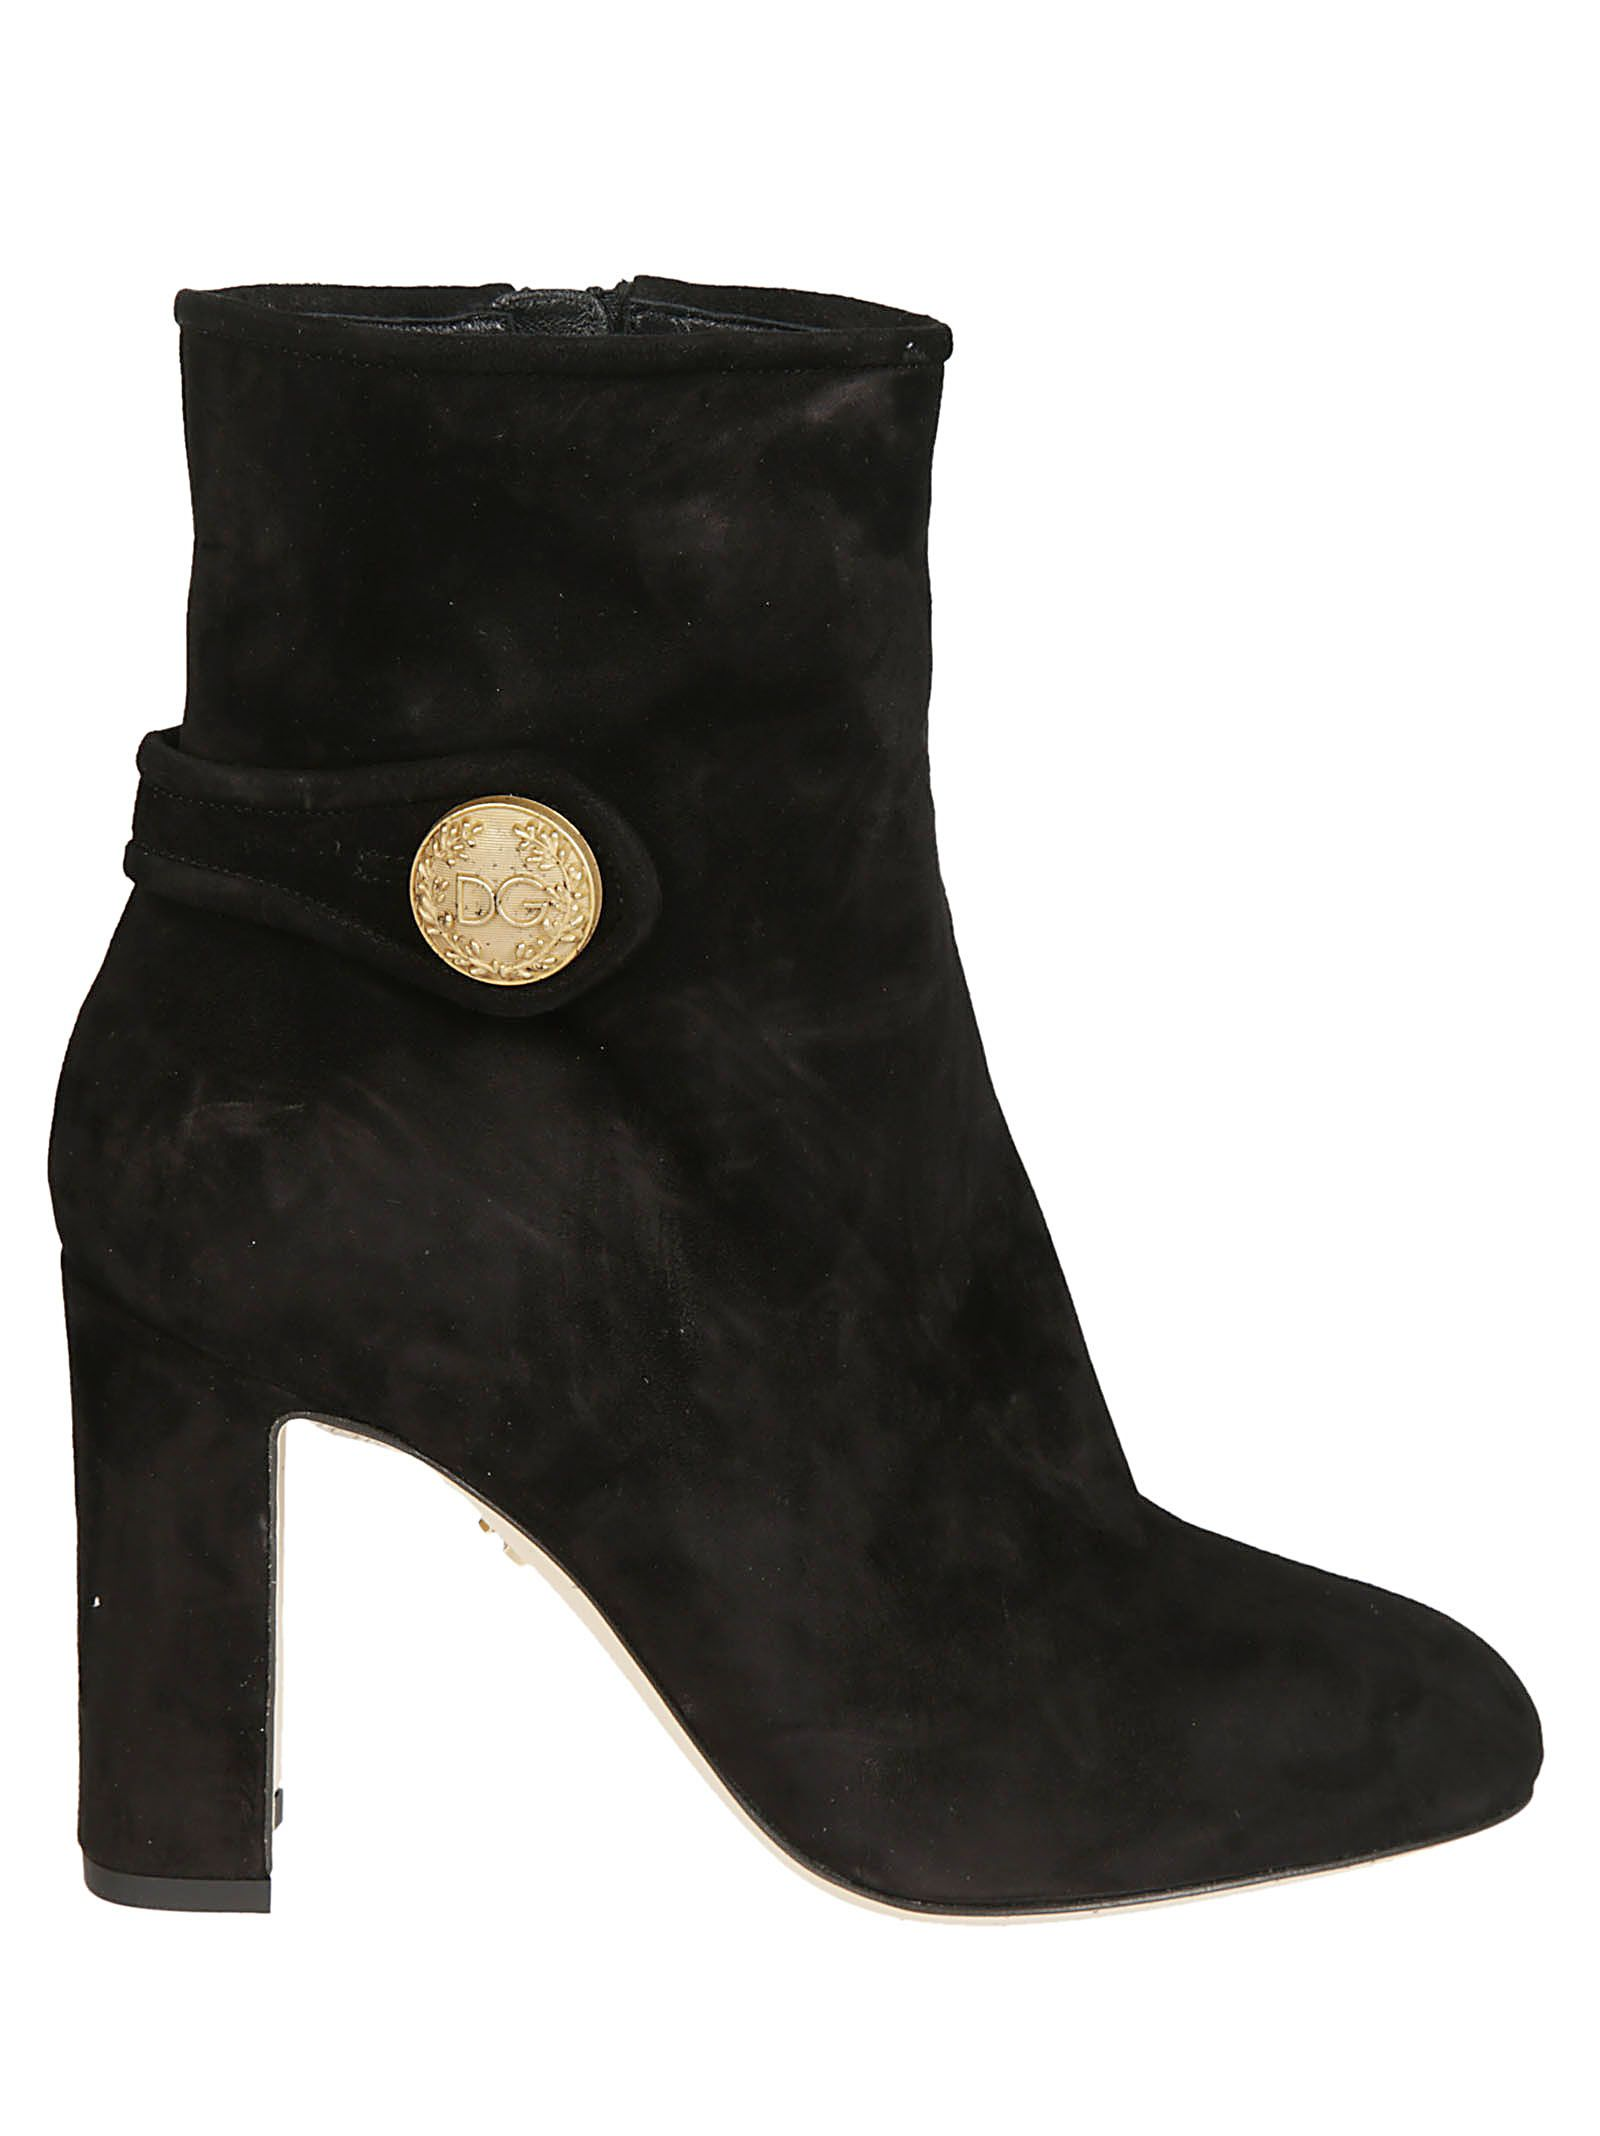 Dolce & Gabbana Vally Ankle Boots